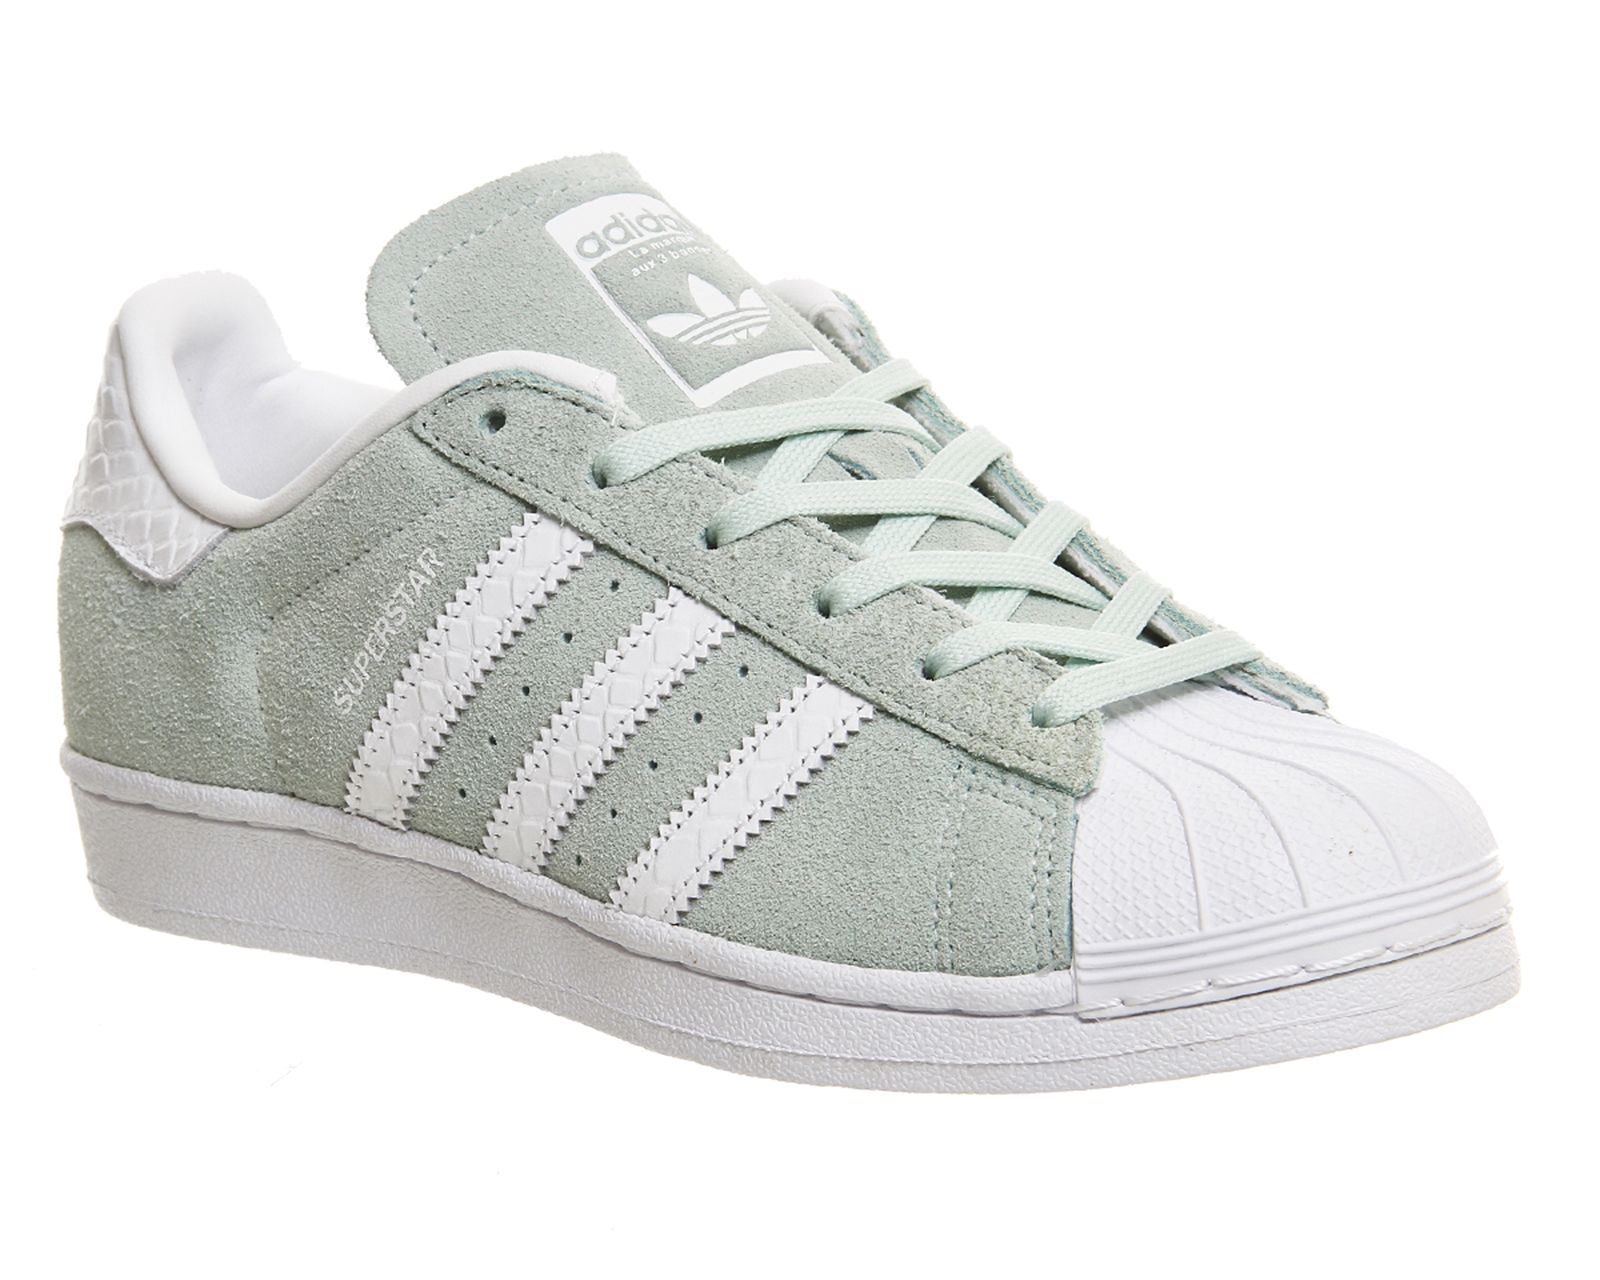 93d27de03deb buy adidas superstar mens buying now earthholistic0695  buy ice mint white  snake adidas superstar 1 from office.co.uk.